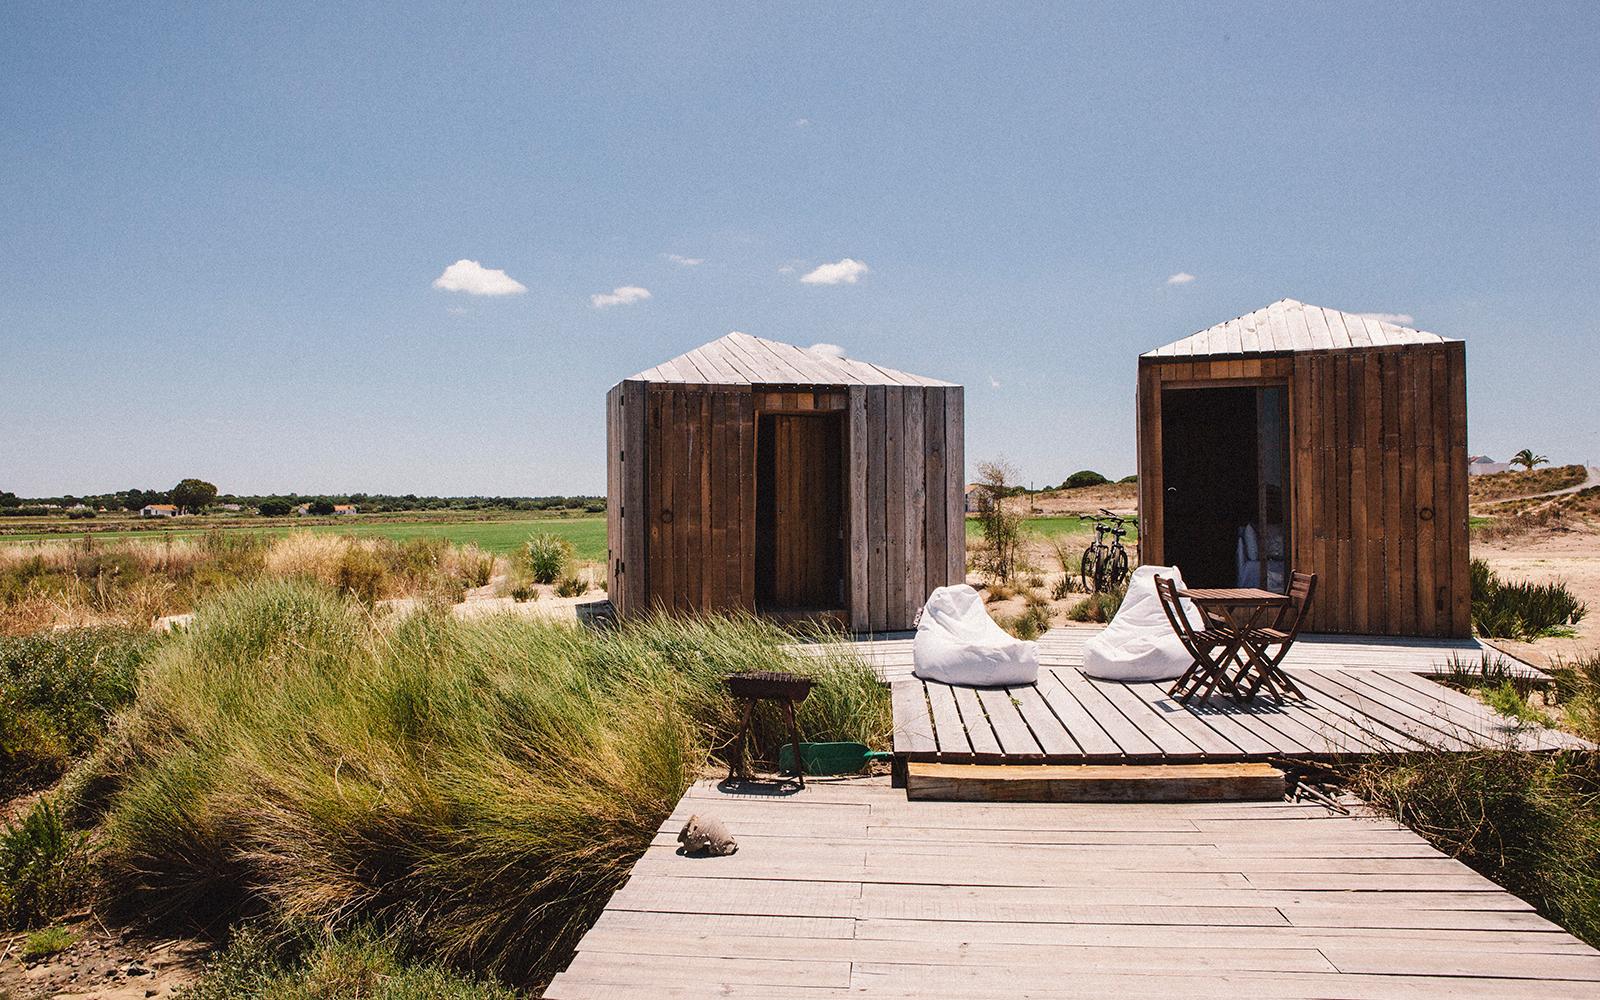 New Boutique Hotels in Portugal: Cabanas no Rio, Comporta